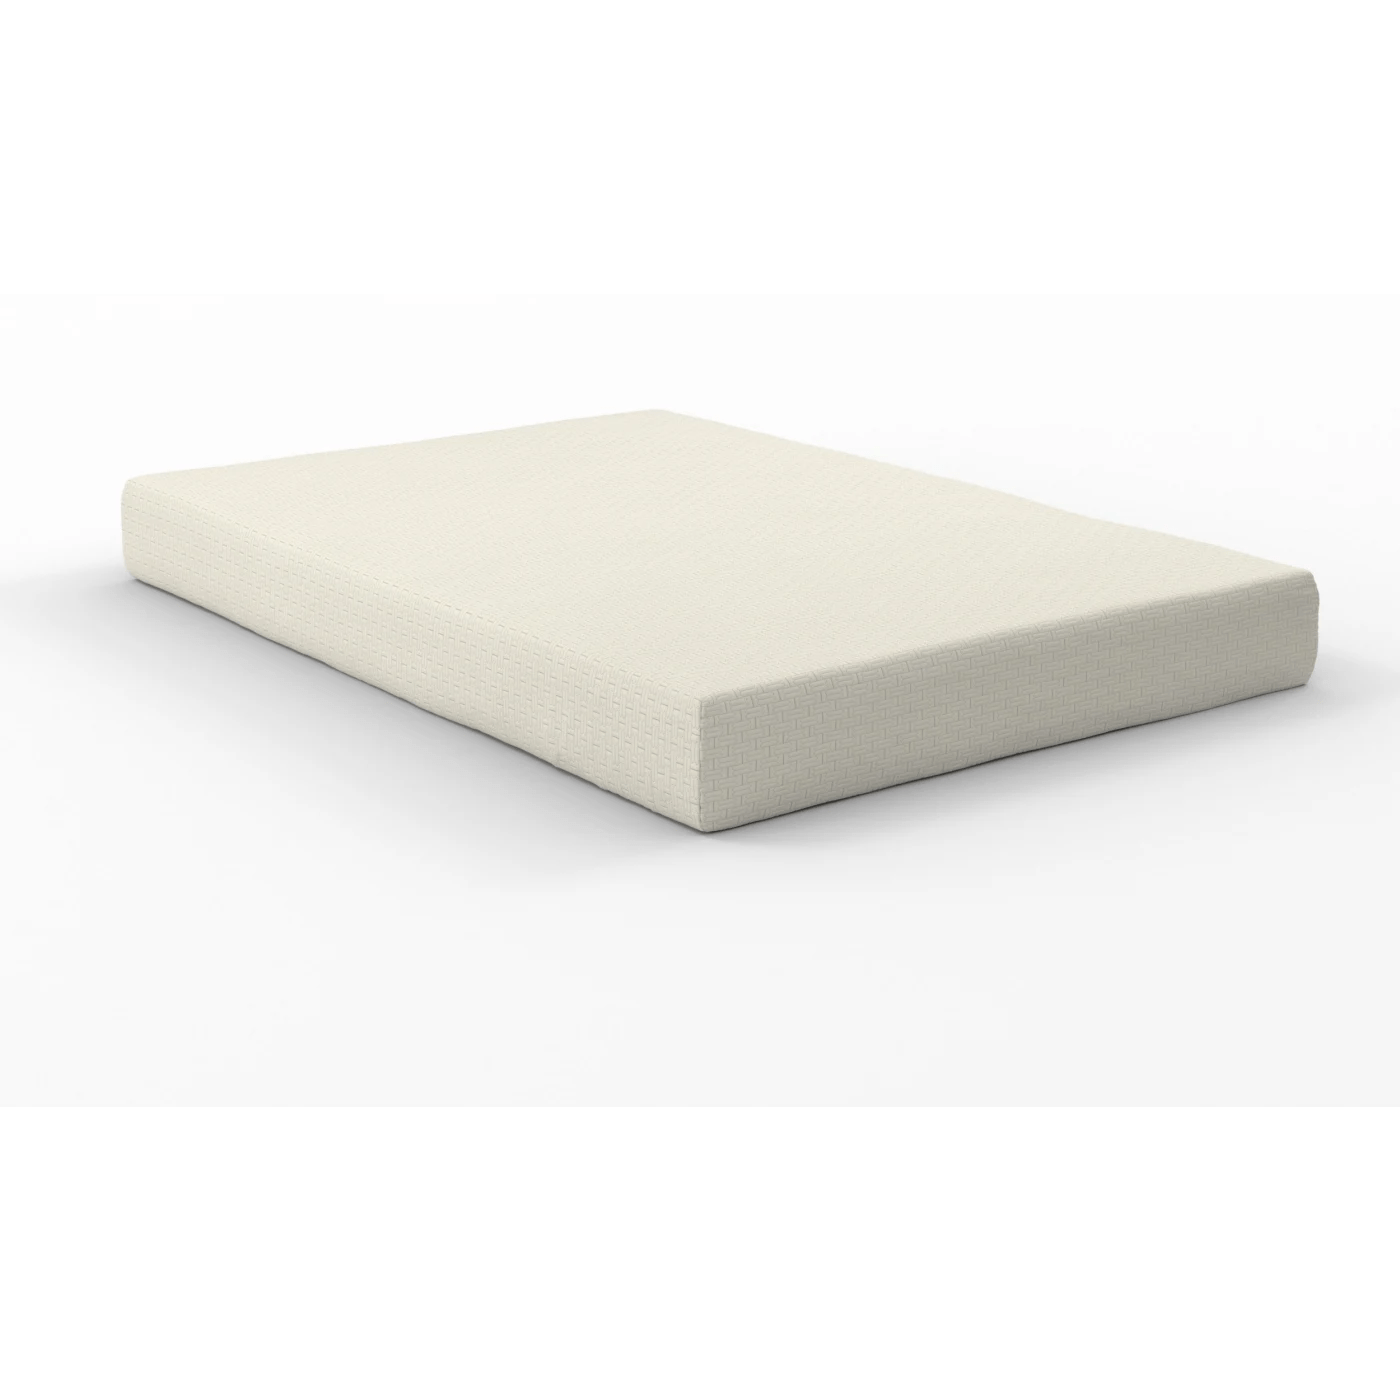 Expanded Queen Mattress Sierra Sleep By Ashley M72631